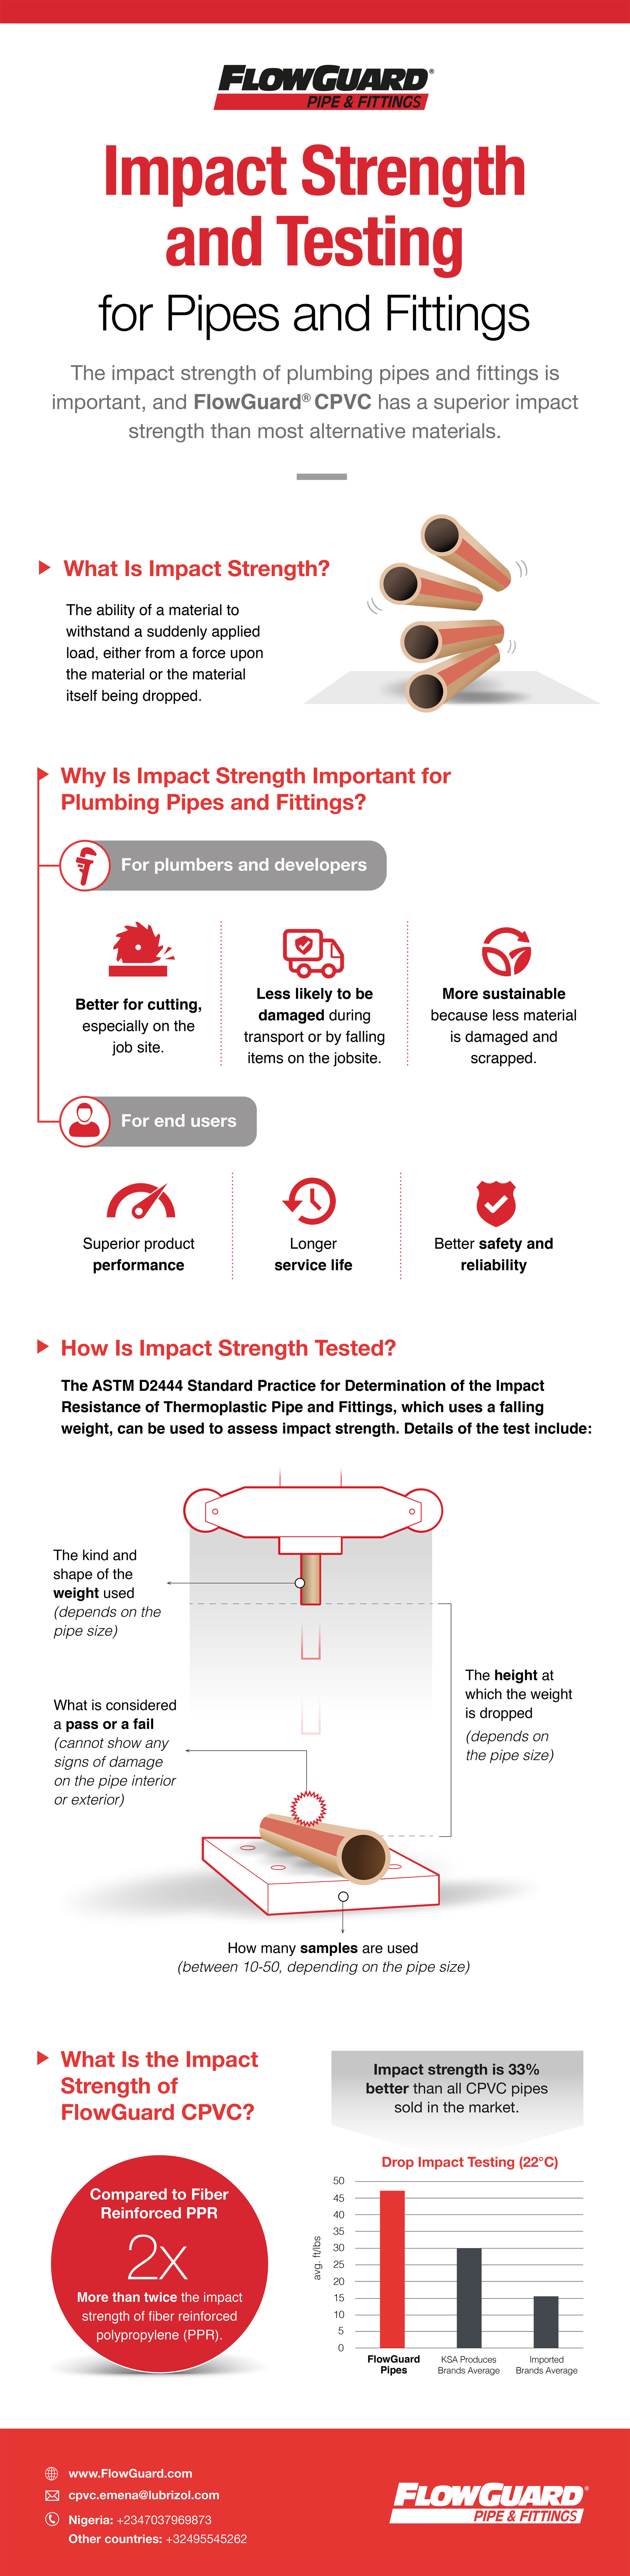 Impact_Strength_Infographic_blog_EN-AFR